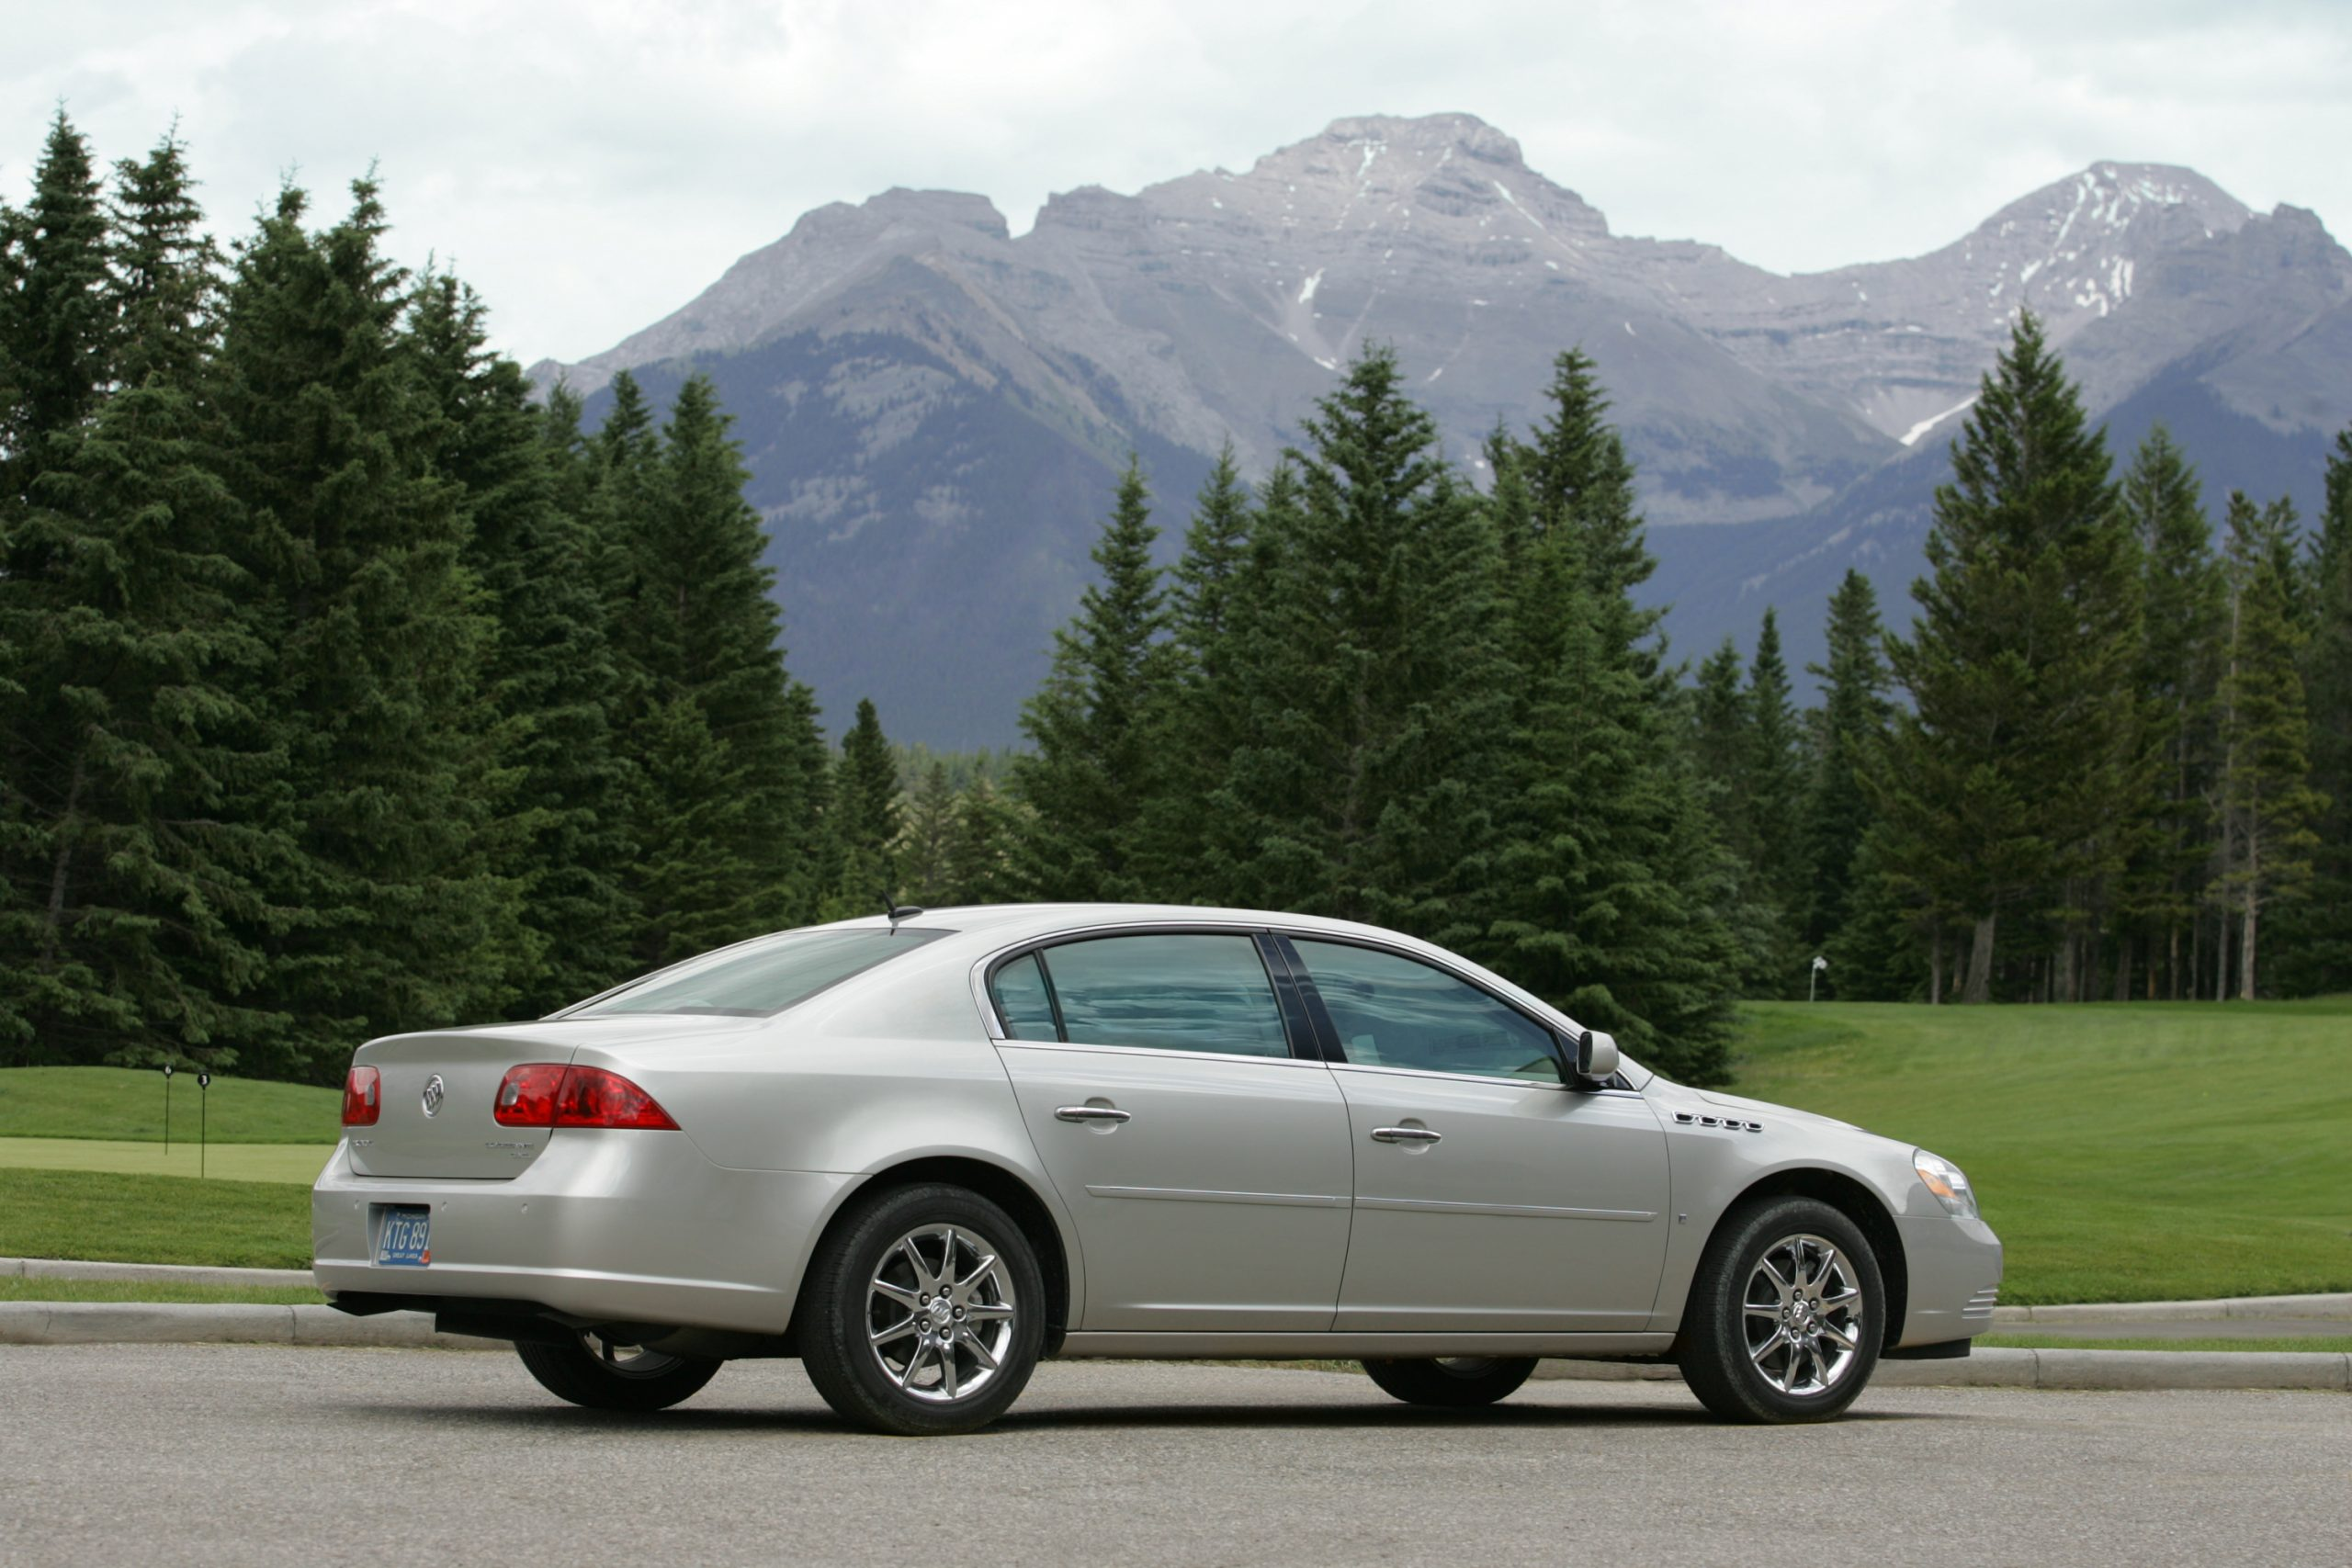 Are You Ready To Wave Goodbye To The Buick Lucerne?   Gm 2022 Buick Lucerne Models, Manual, Issues